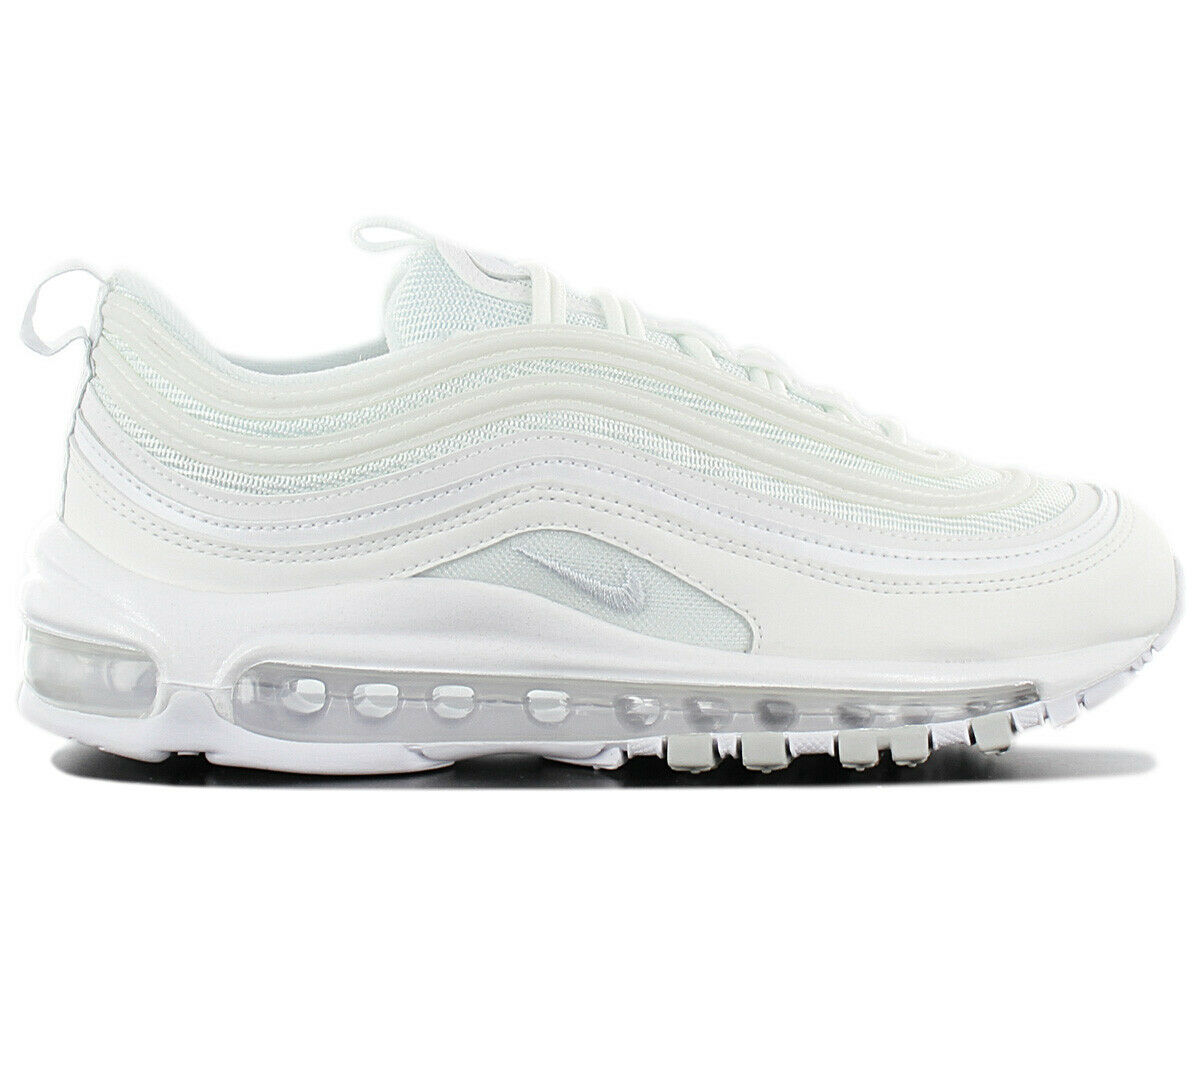 Nike Air Max 97 Womens Sneakers 921733-100 White Fashion shoes Sneakers NEW